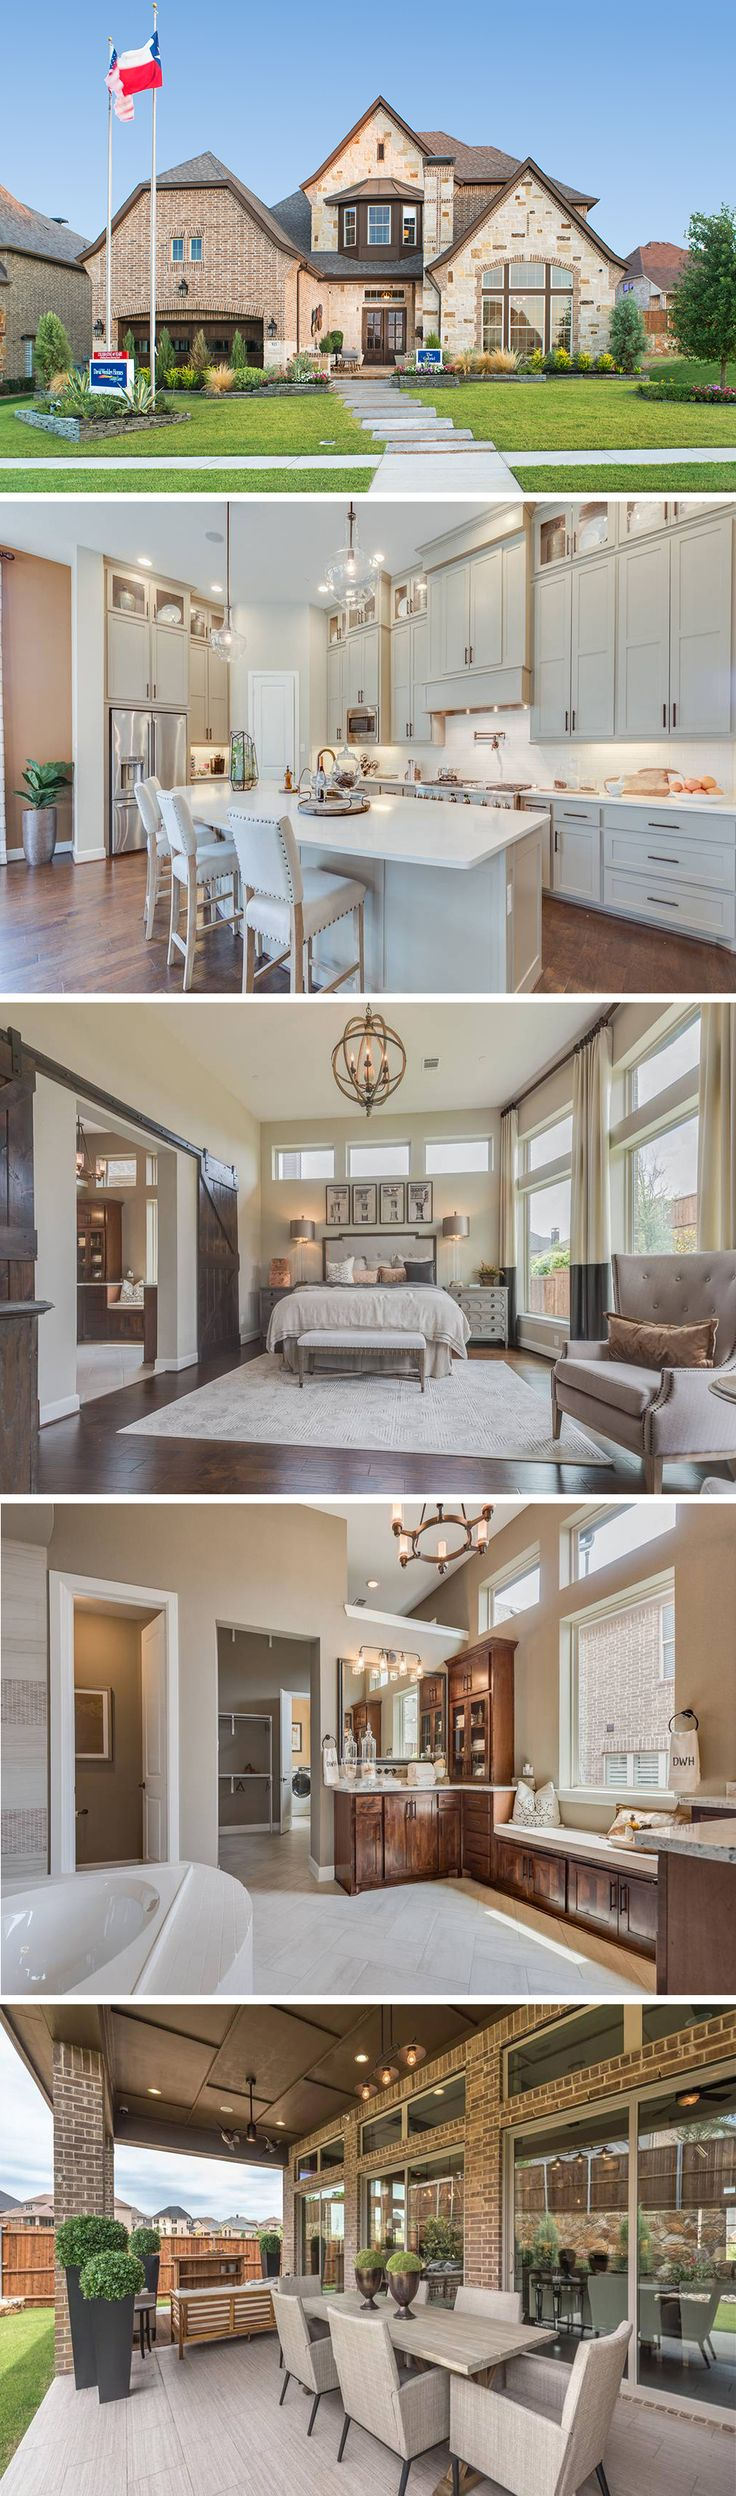 The Gabriel by David Weekley Homes in Fairway Ranch is a 4 bedroom home that features an open kitchen and family room, large wooden ceiling beams and a sizable owners retreat. Custom home features include an outdoor living space, an extra media room and a guest suite.